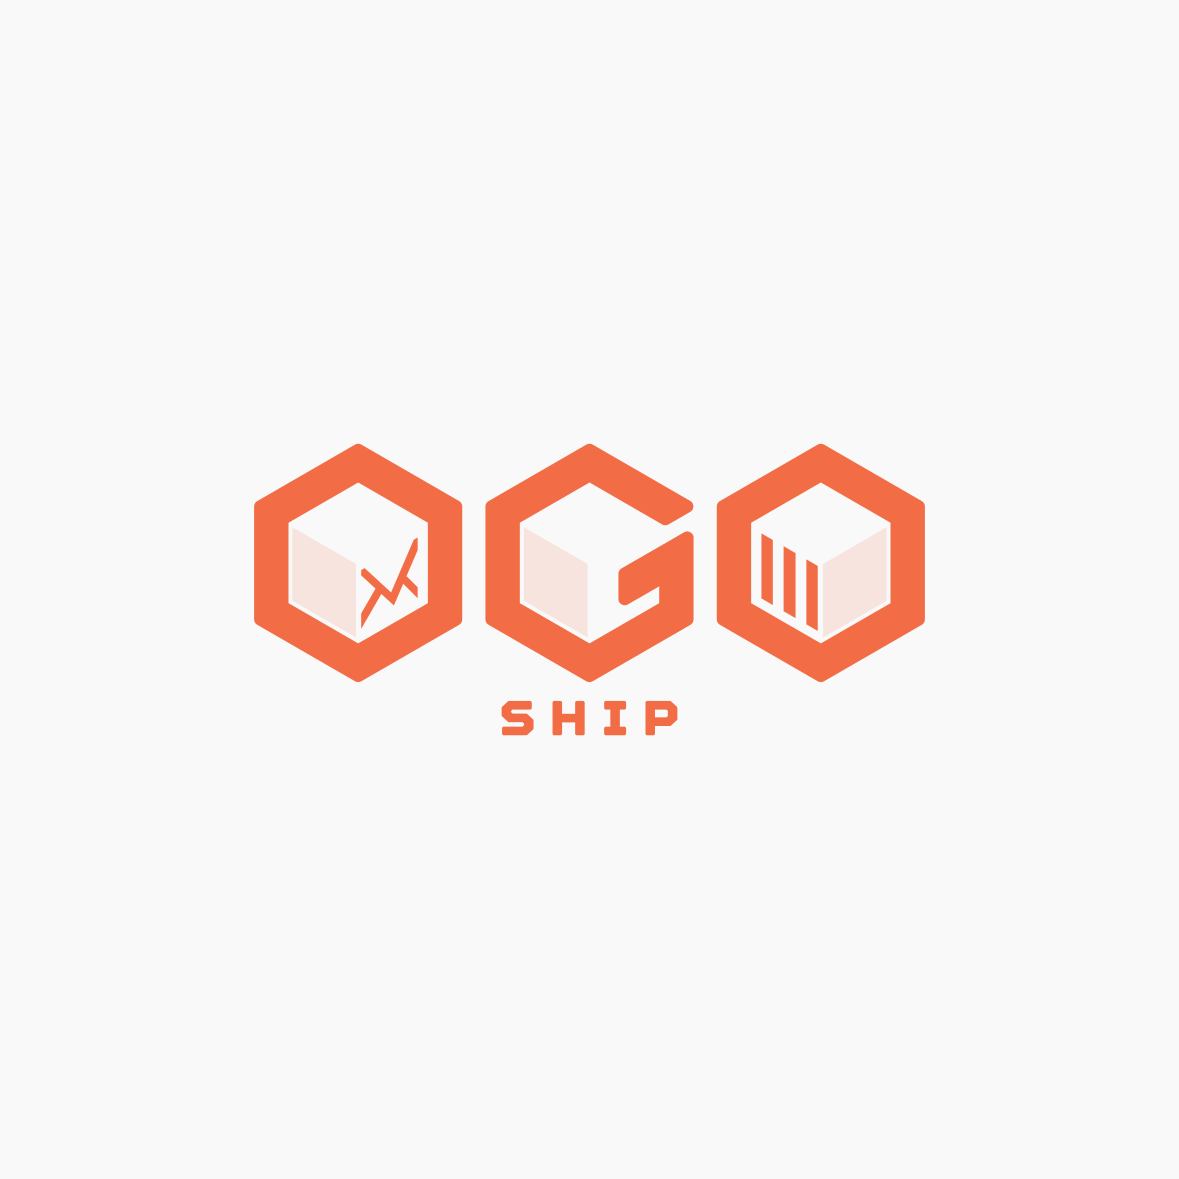 Ogoship needs a logo that stands out